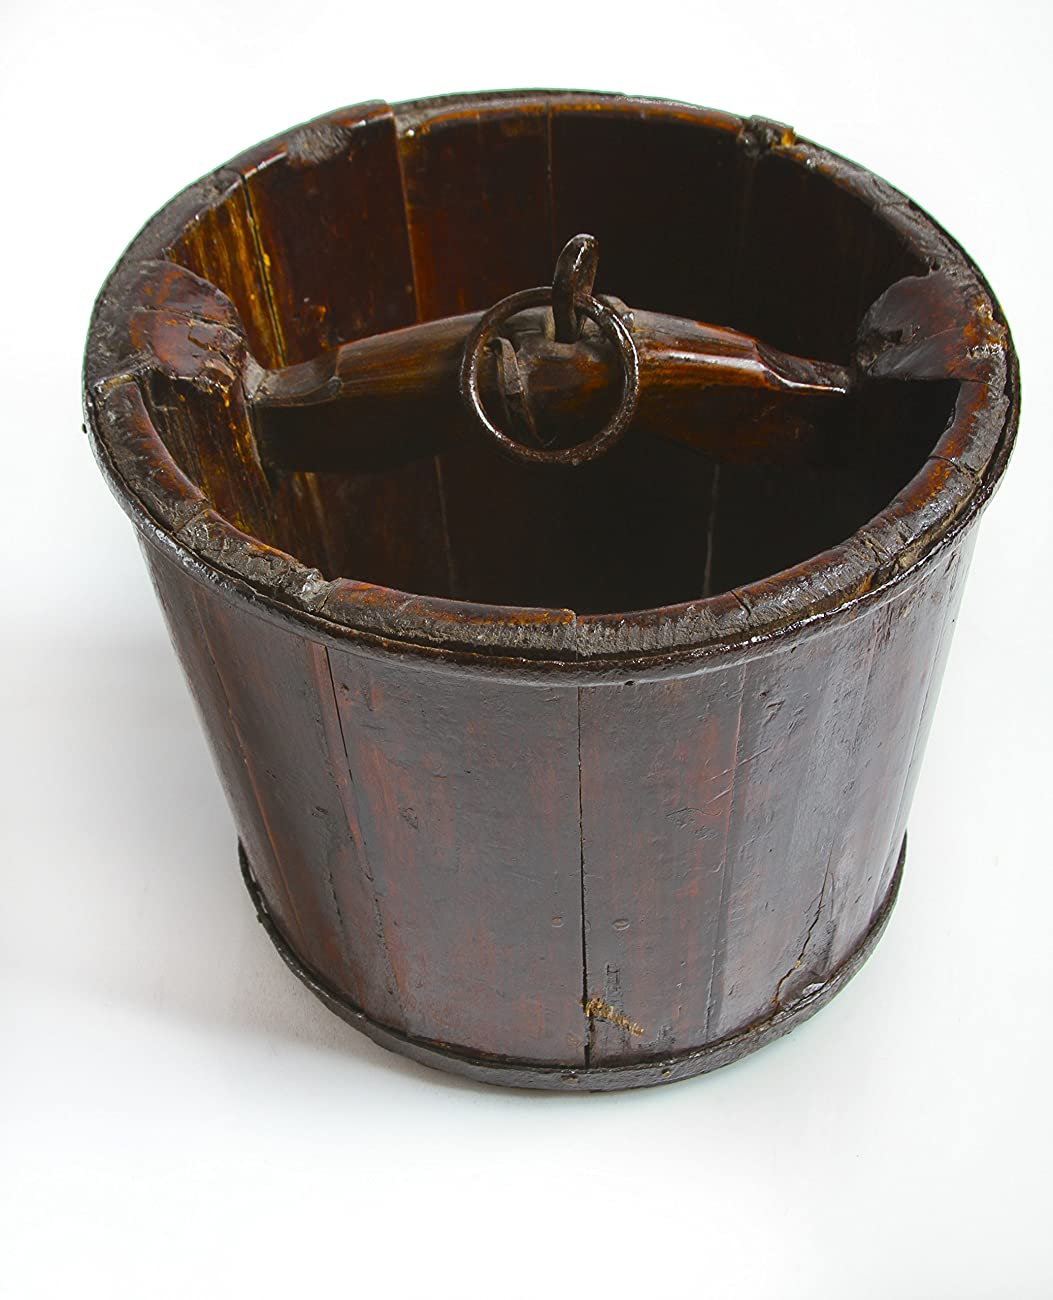 Vintage Chinese Wooden Pail, Brown, 10.5